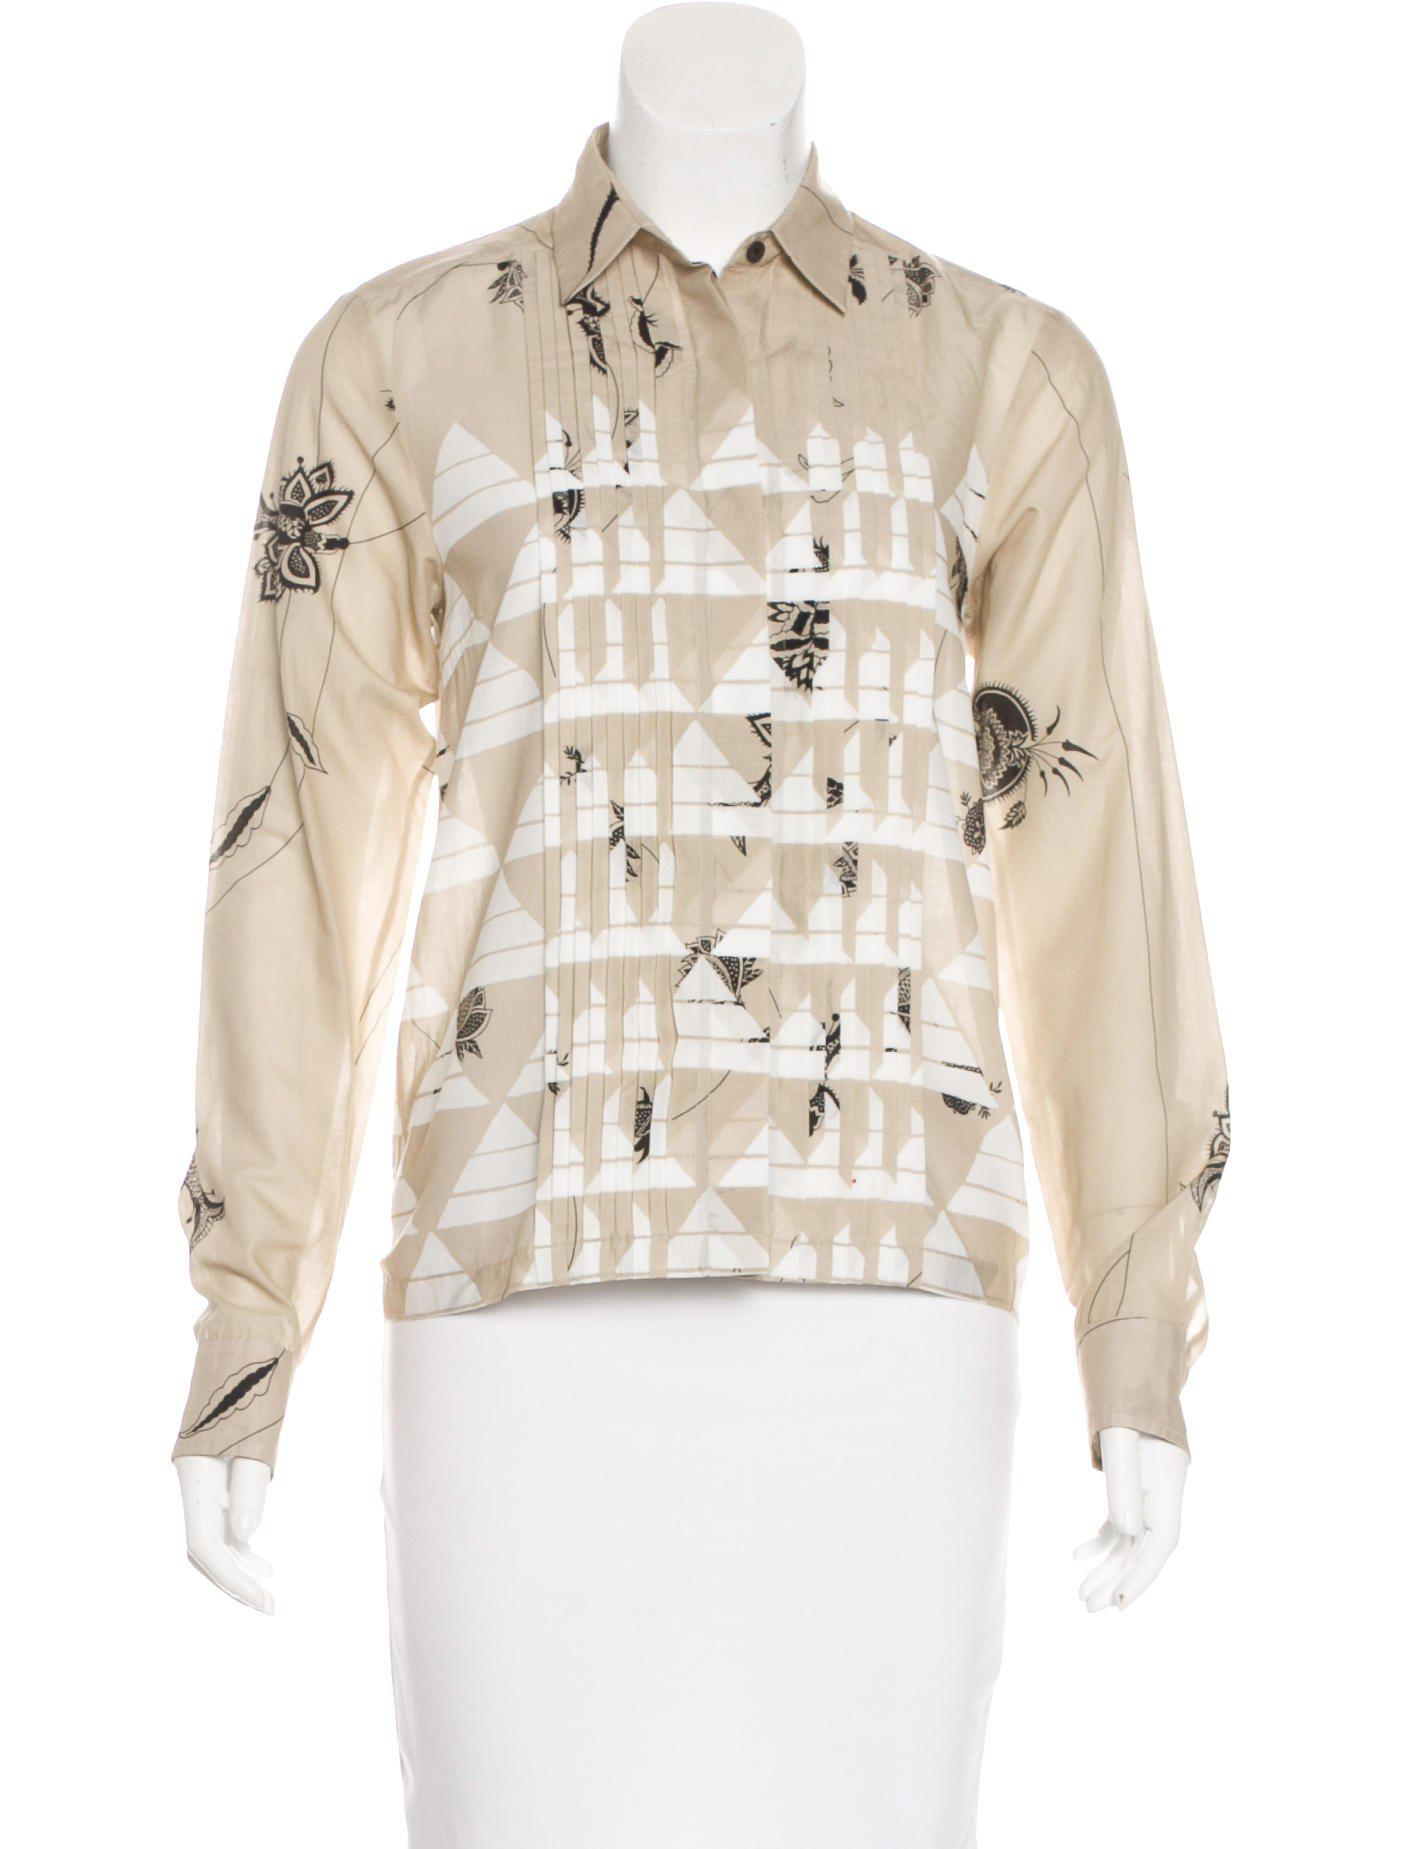 Dries Van Noten Sheer Silk Blouse w/ Tags Free Shipping Largest Supplier 08o26